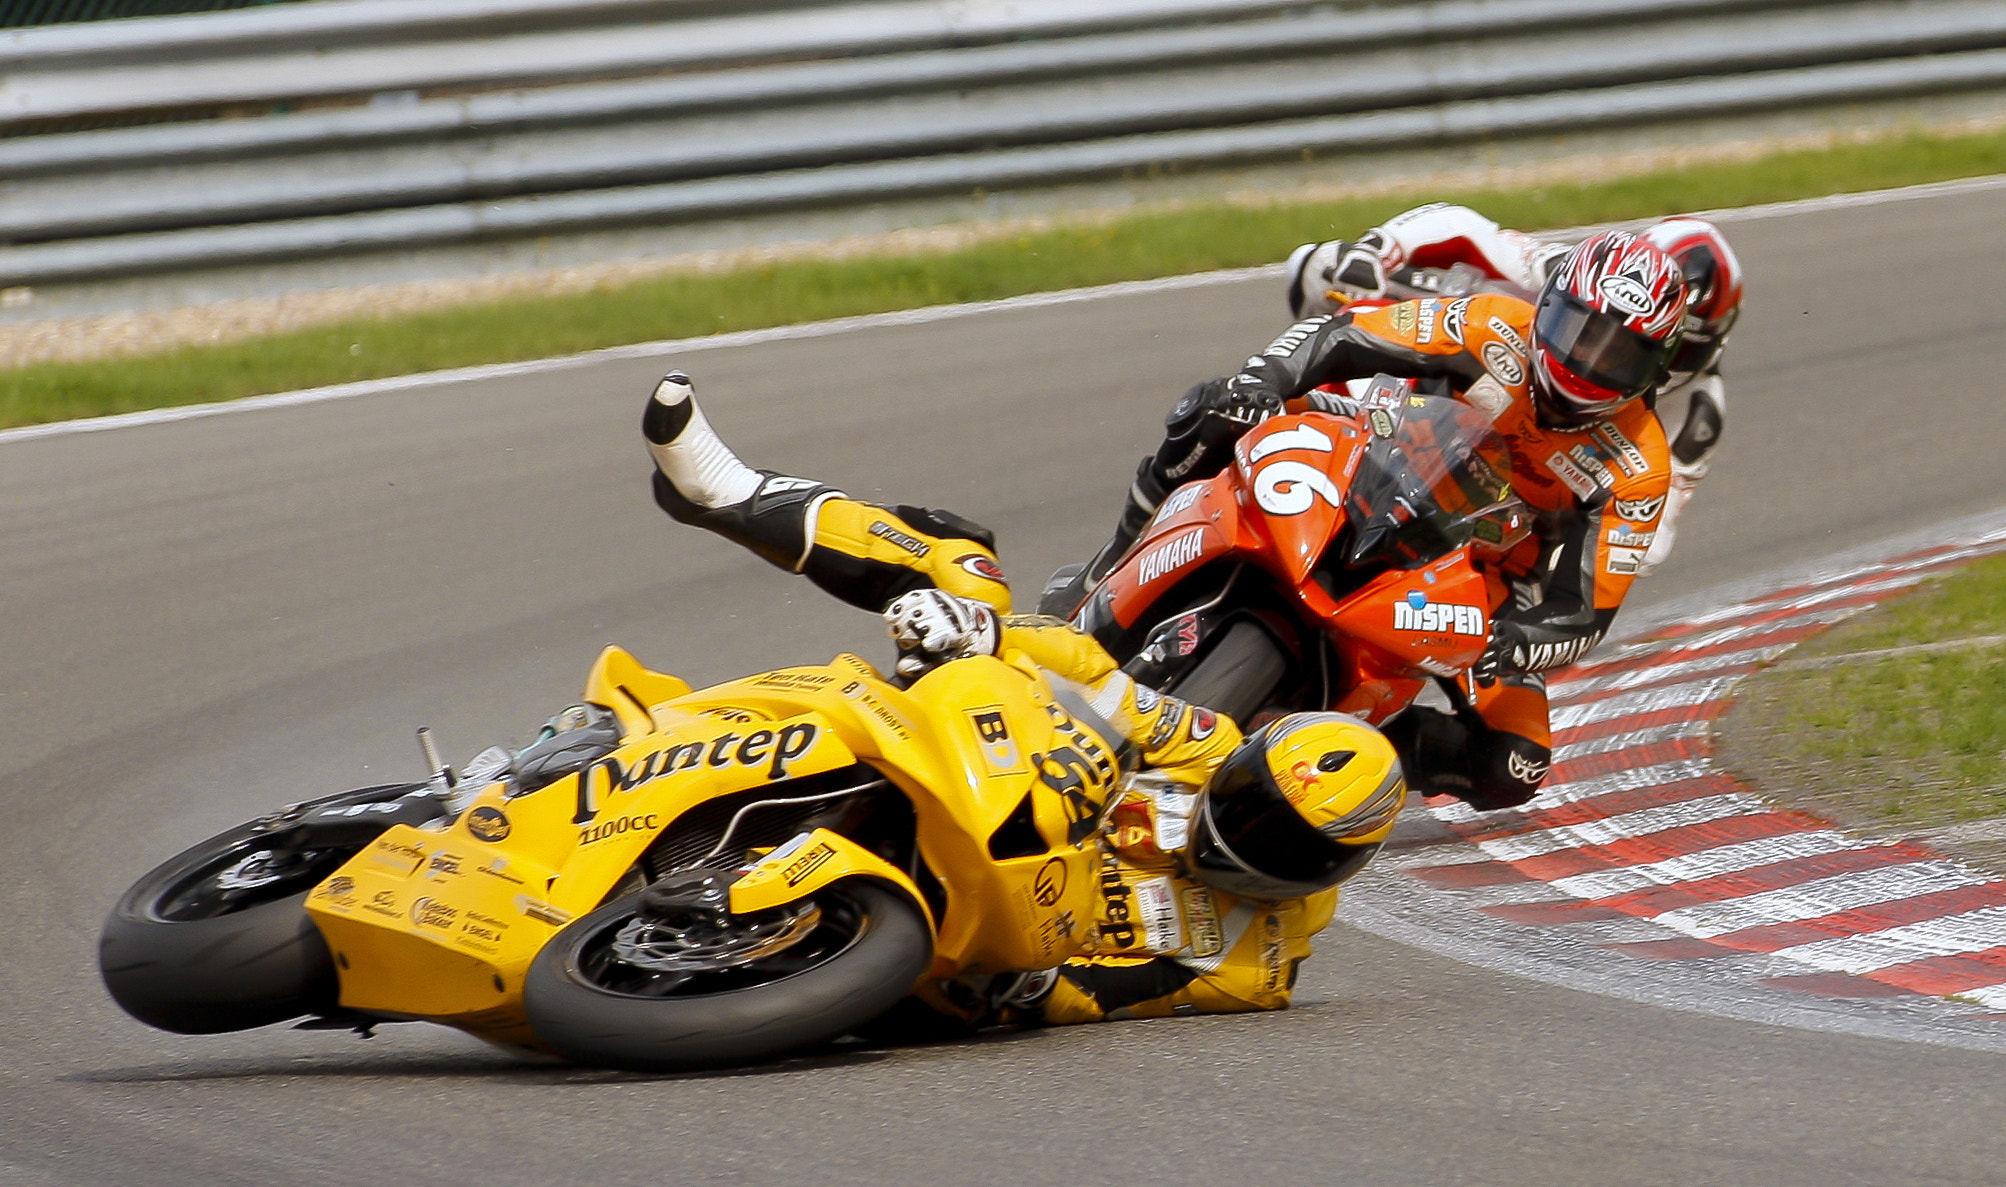 Photograph Johan Veijer Spa Francorchamps superbike by Jan Gabriels on 500px